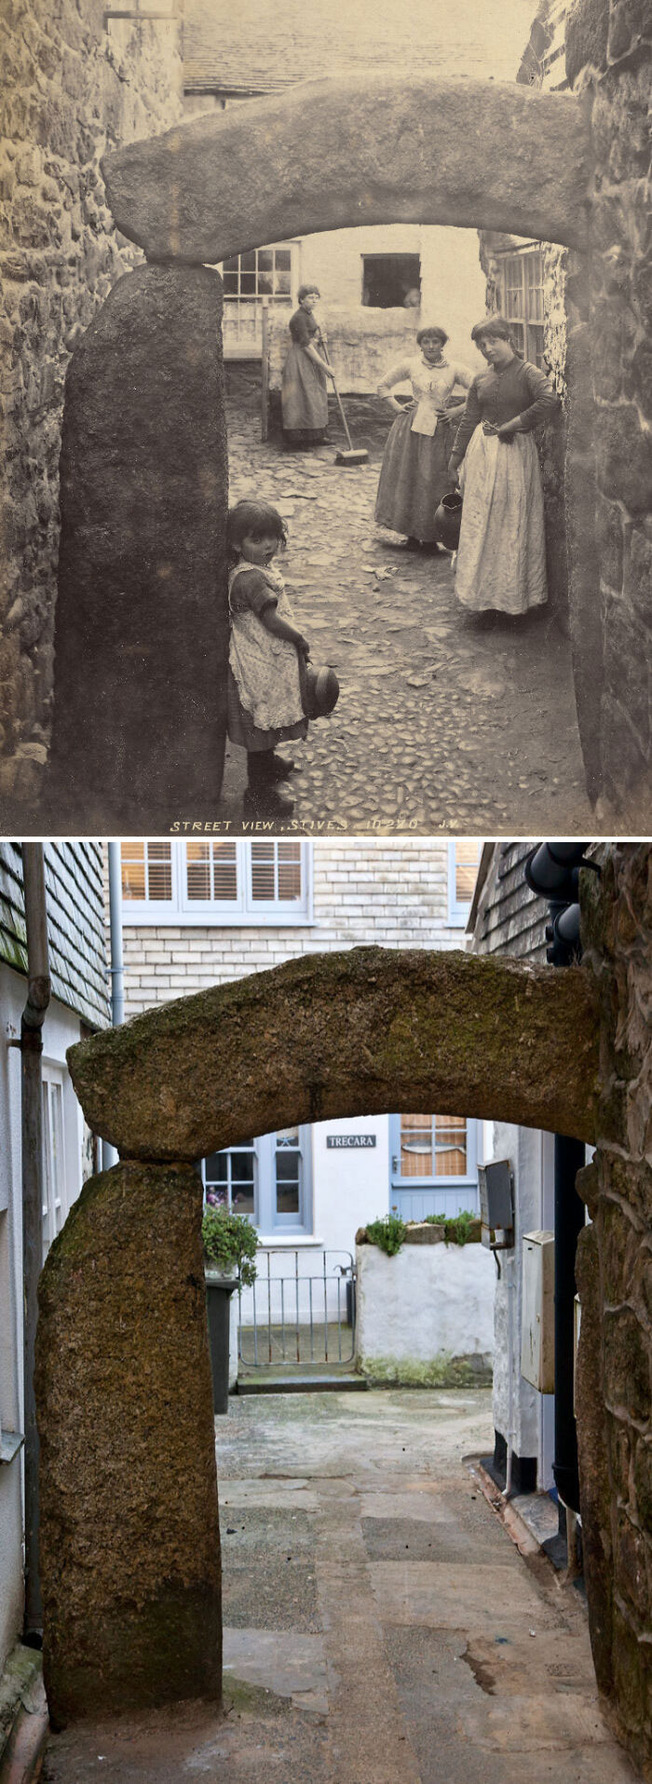 before-after-old-photos-real-life-45375-6151d189b979b__700